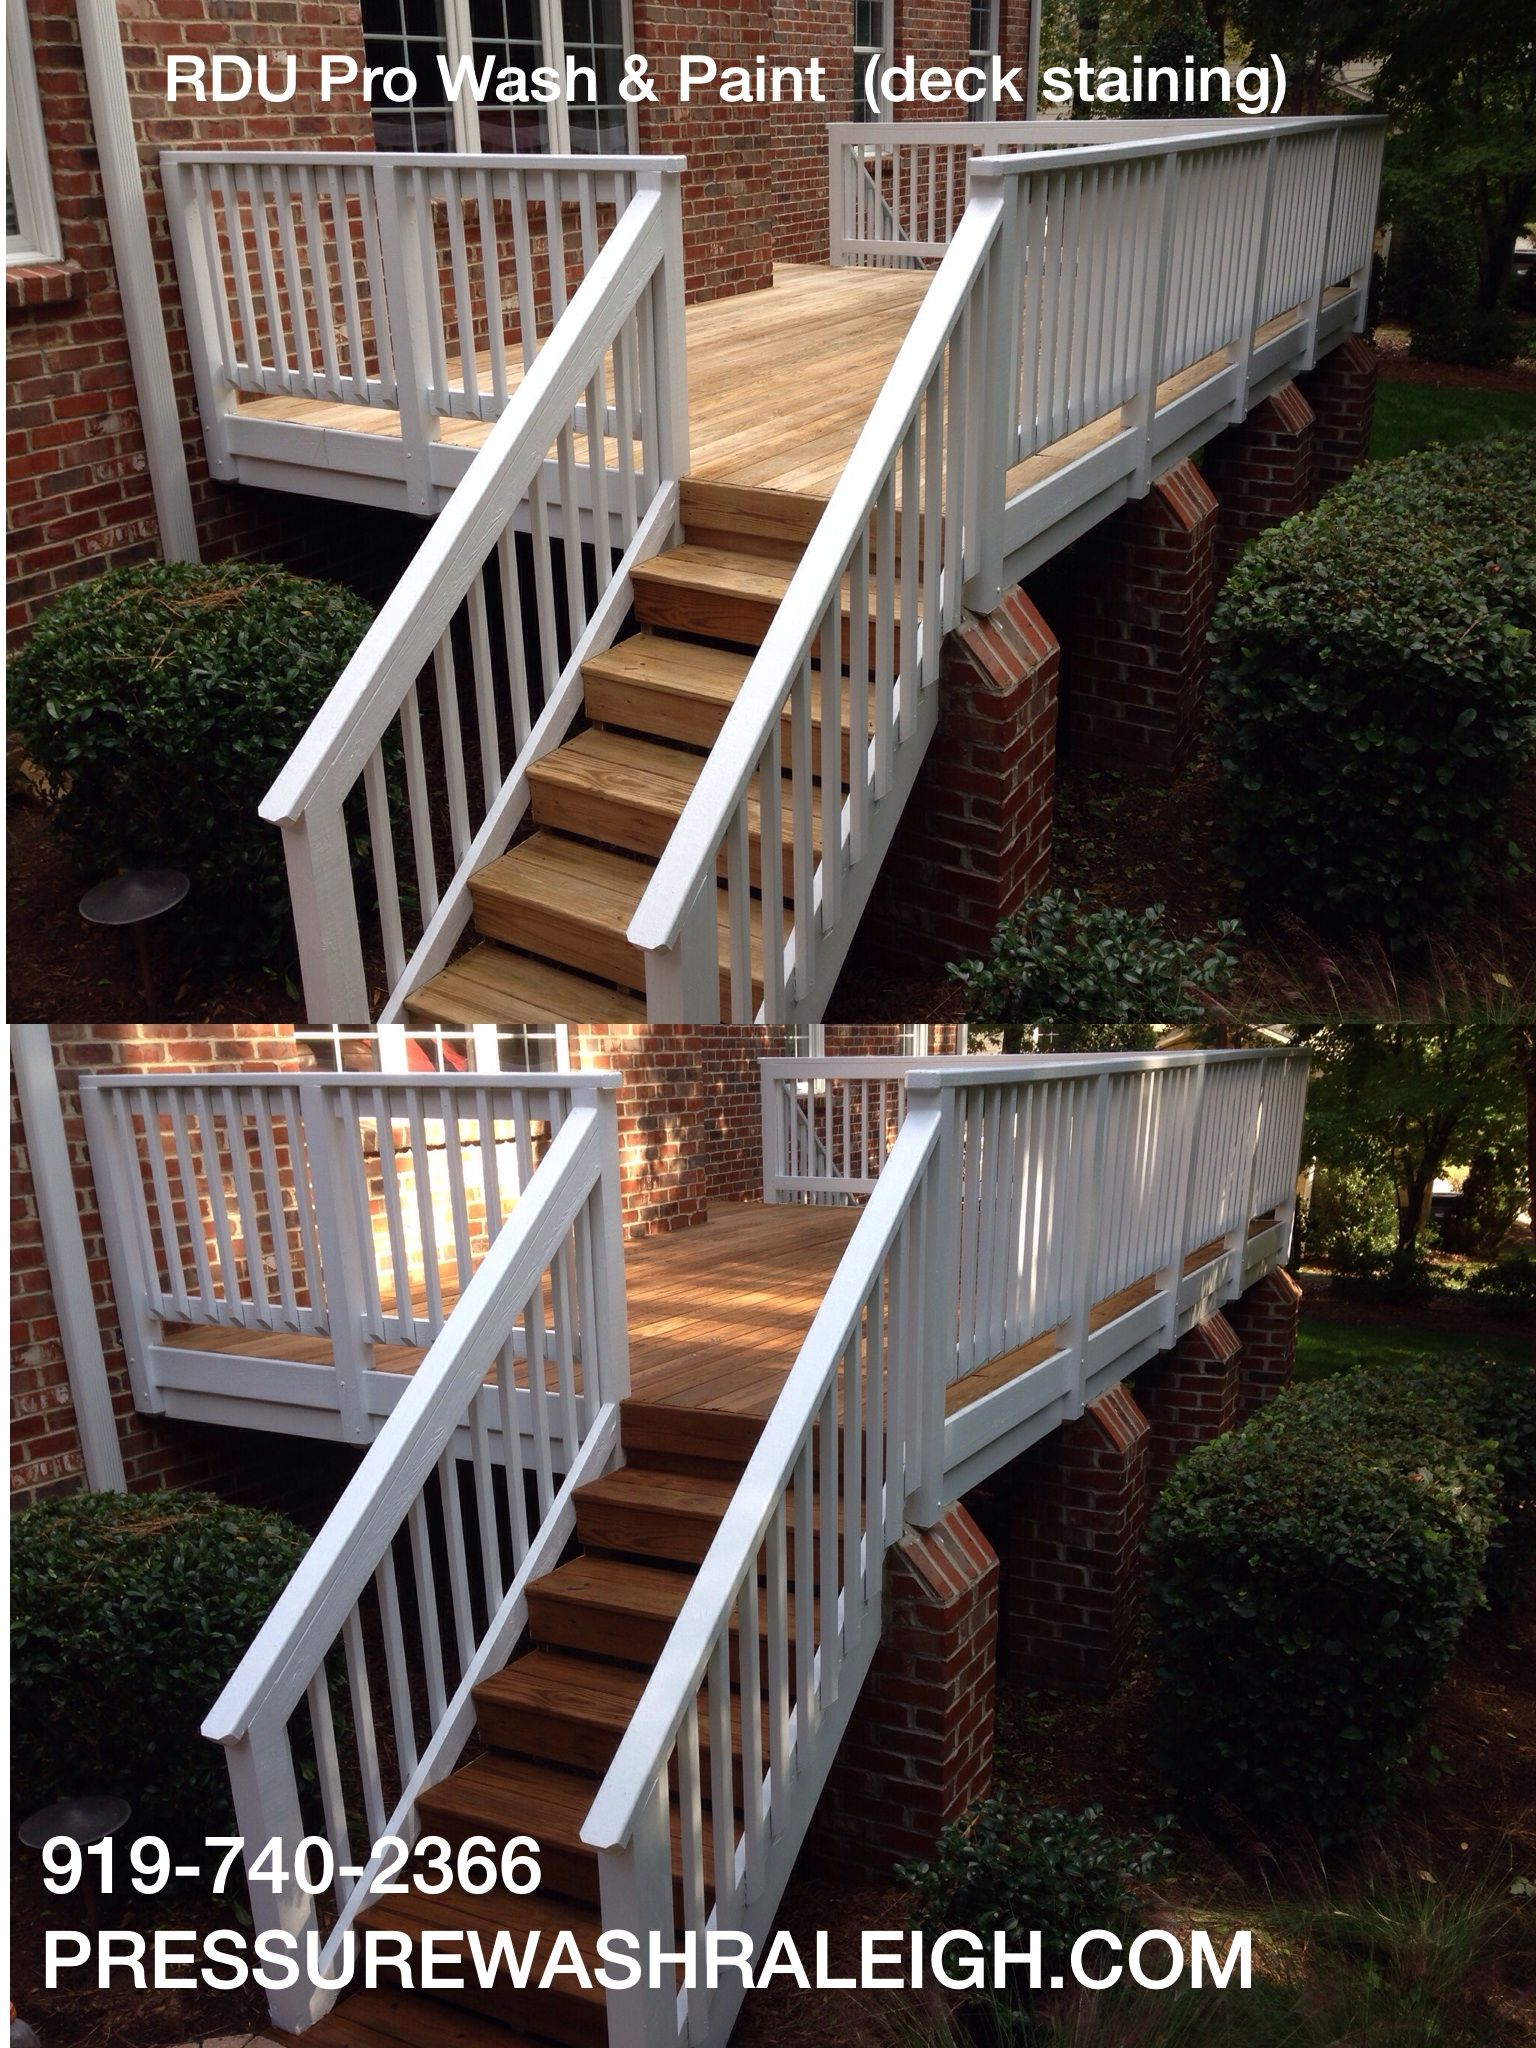 Best Deck Staining Done By Rdu Pro Wash Paint Near Brier Creek In Raleigh Nc Deck Outdoor Decor 400 x 300